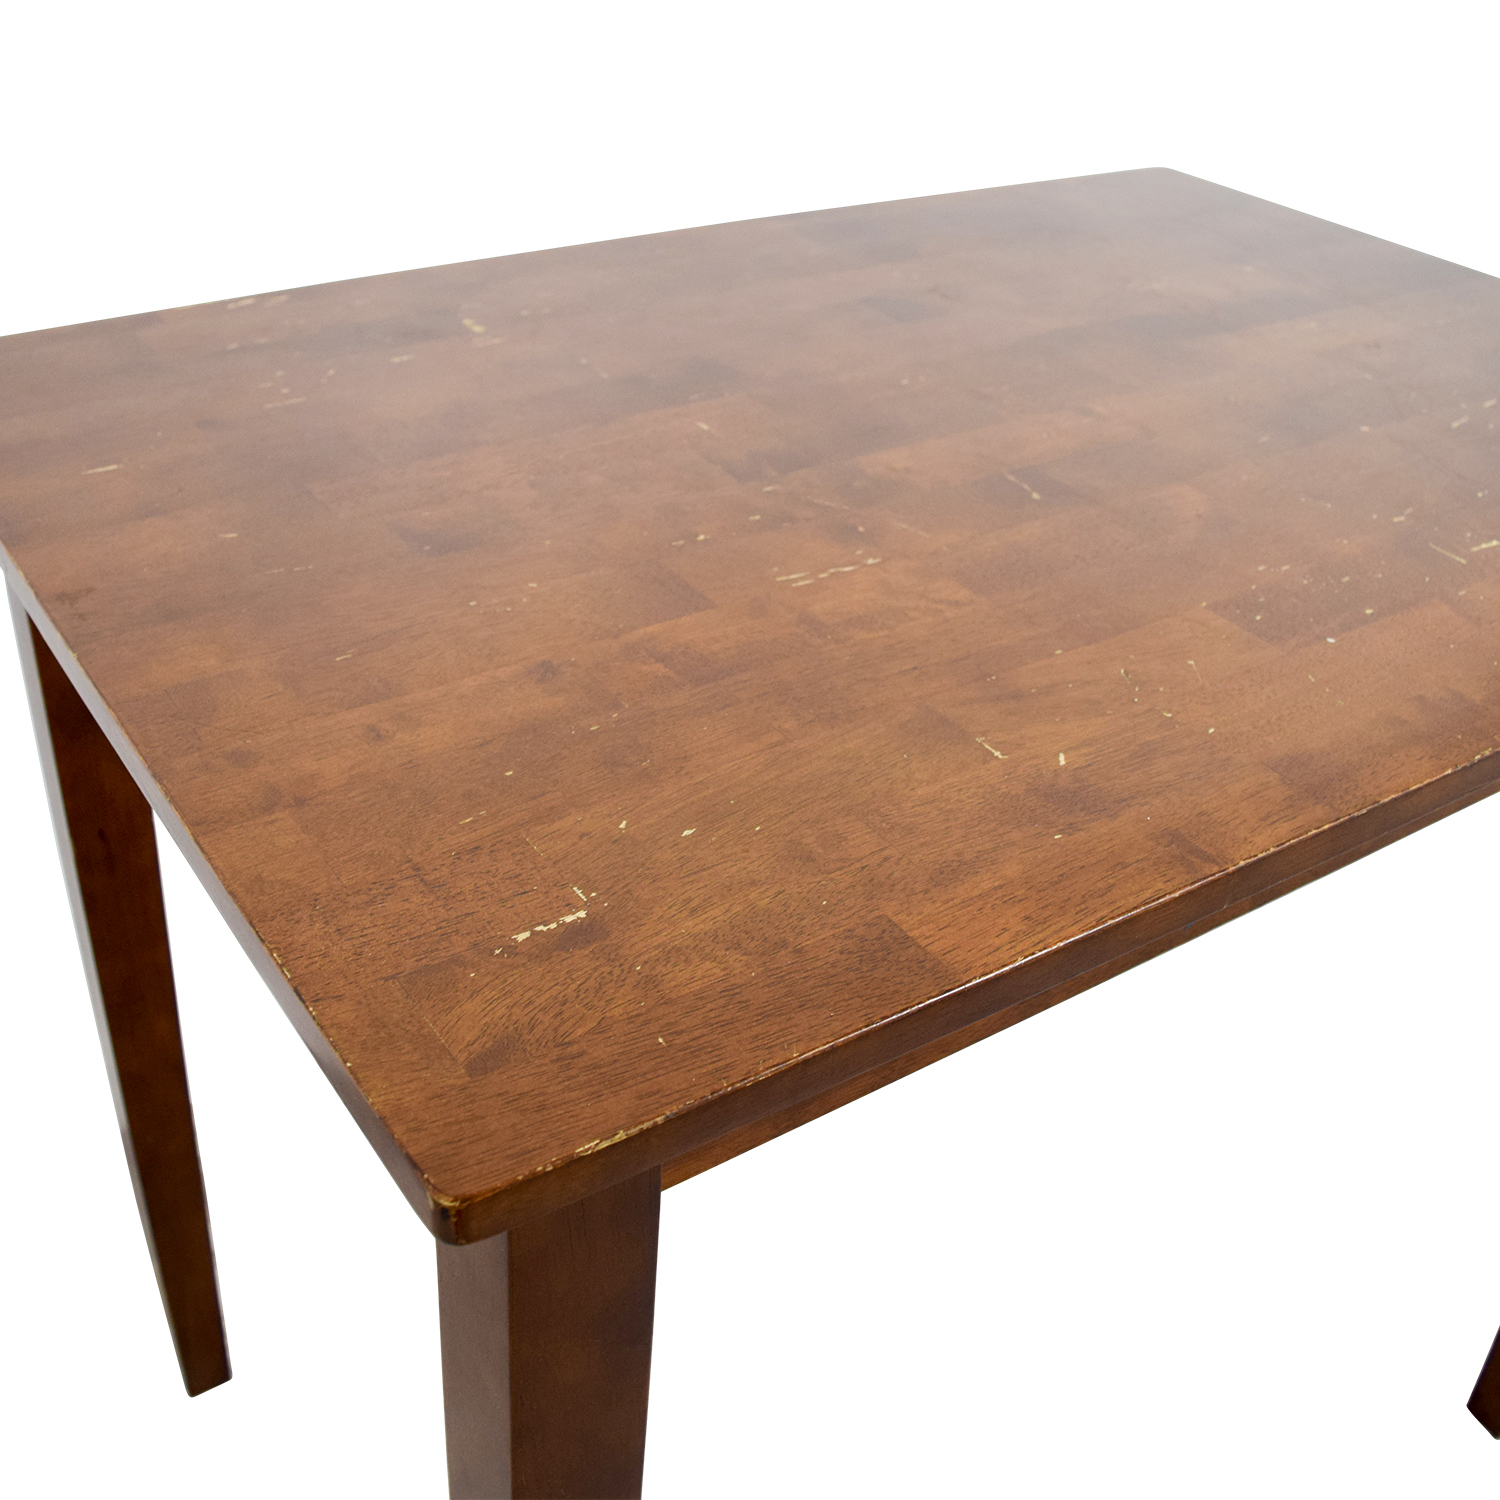 City Furniture City Furniture Pub Table Brown